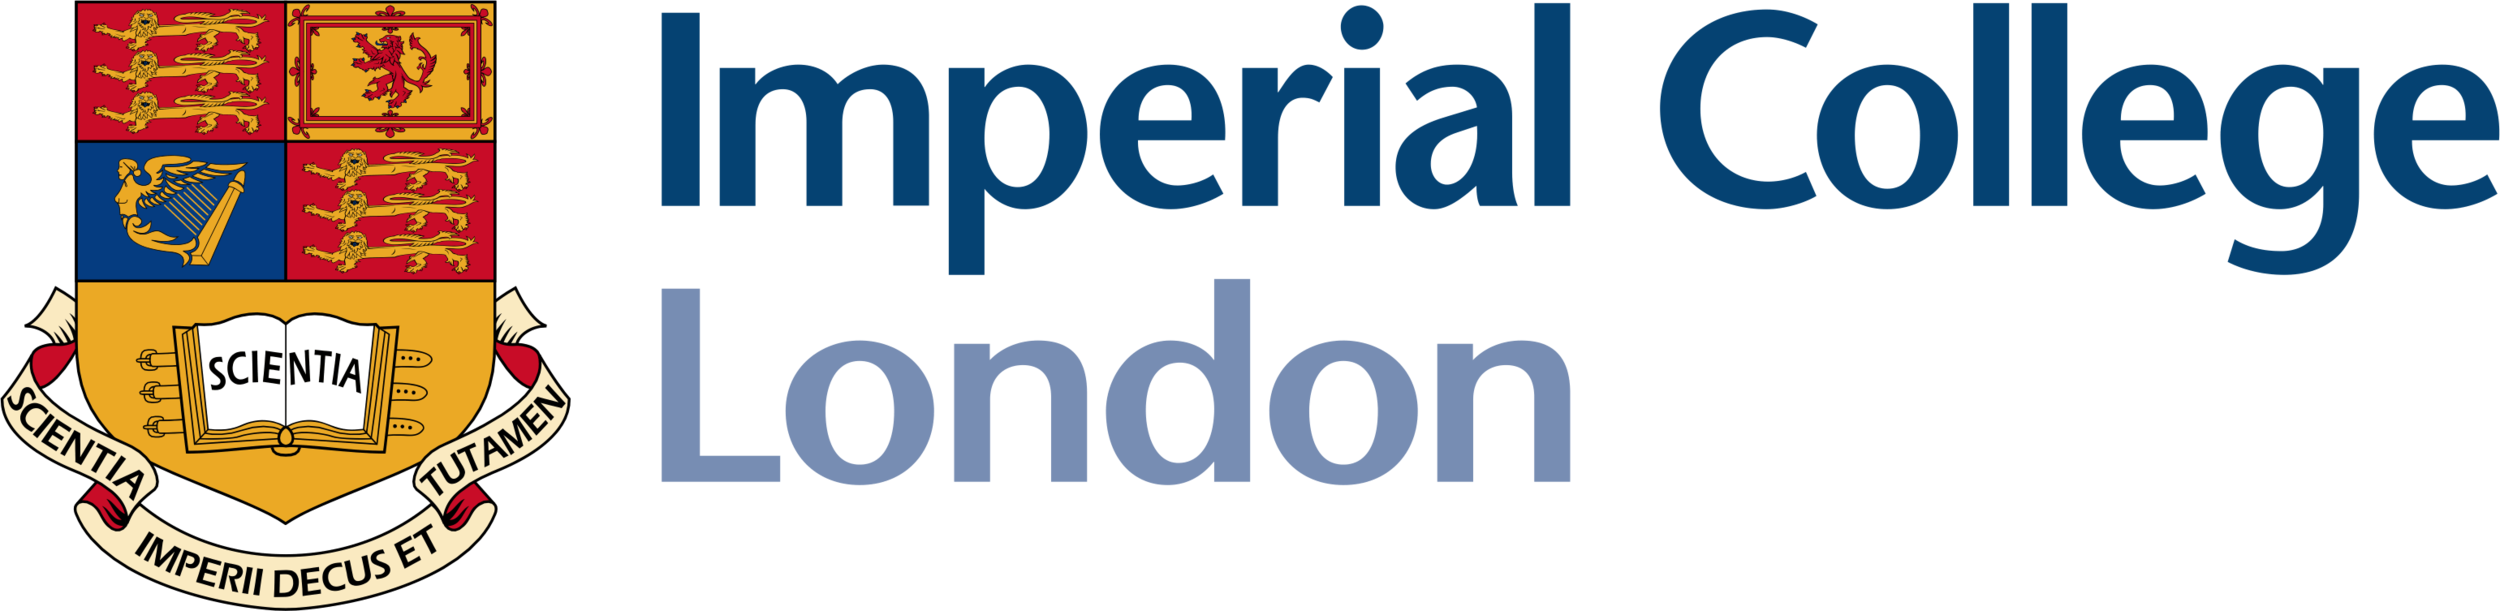 Imperial-College-London2.png